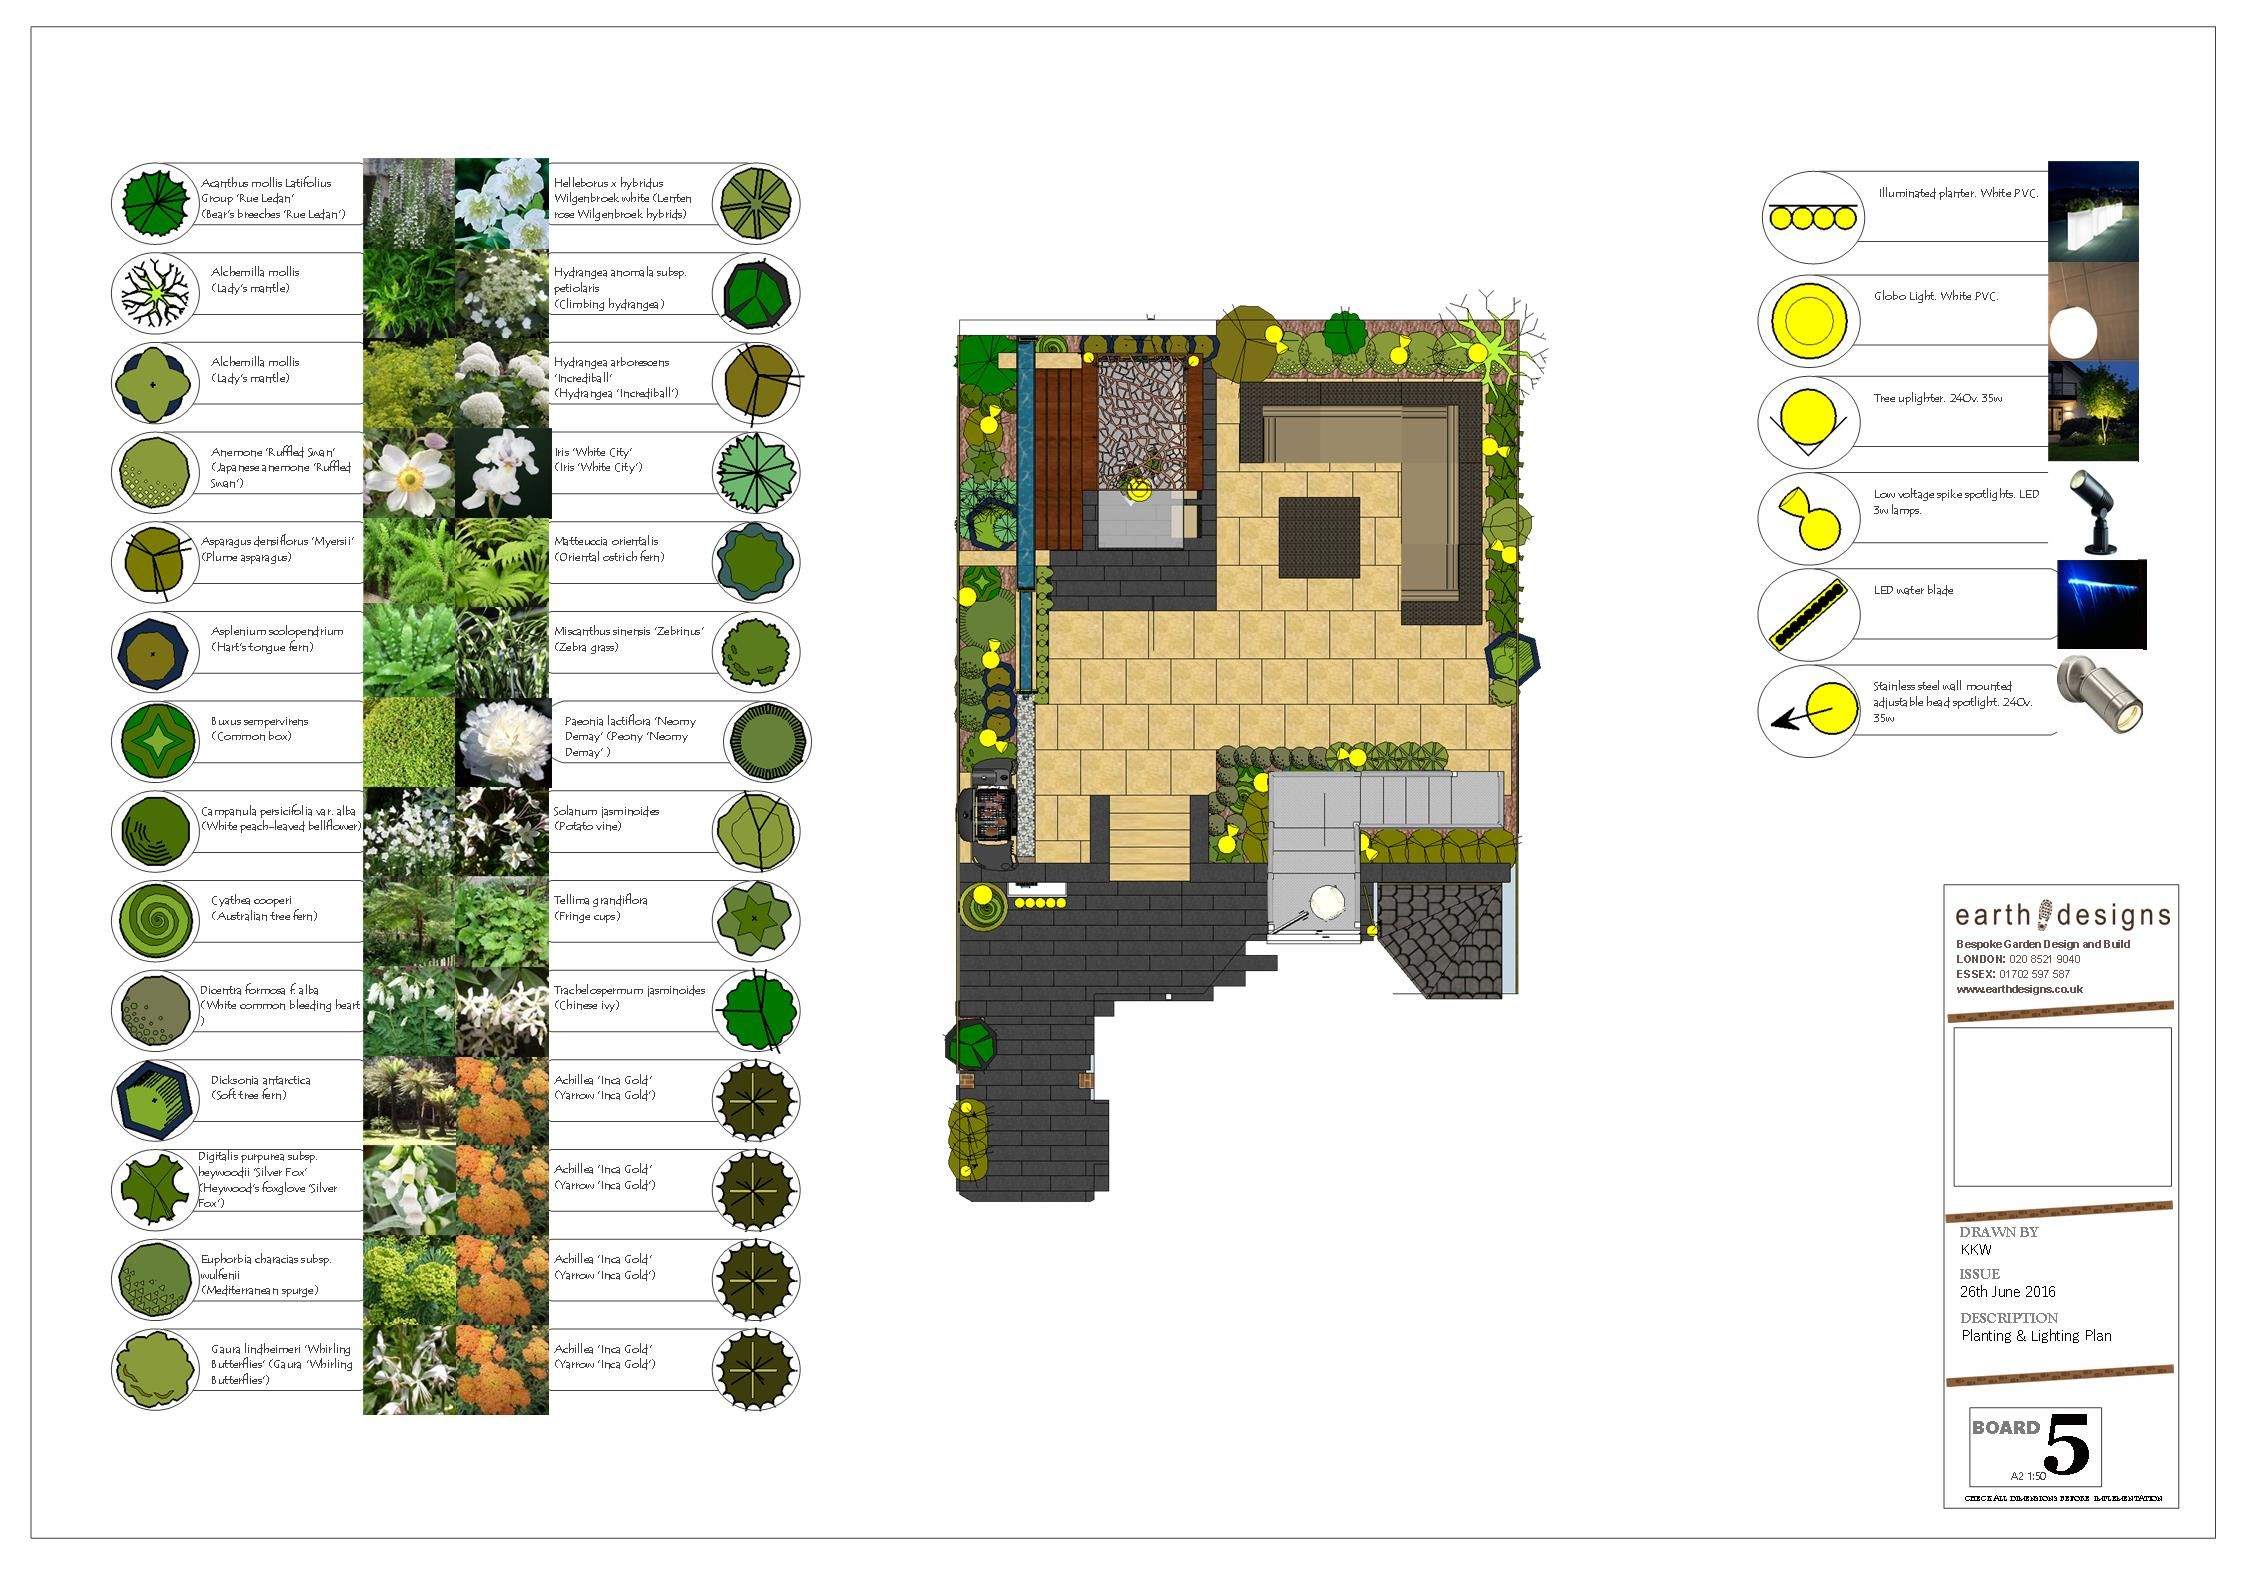 planting and Lighting plan for Lewisham Garden Design #gardendesignsouthlondon #southlondon #gardendesignerlondon